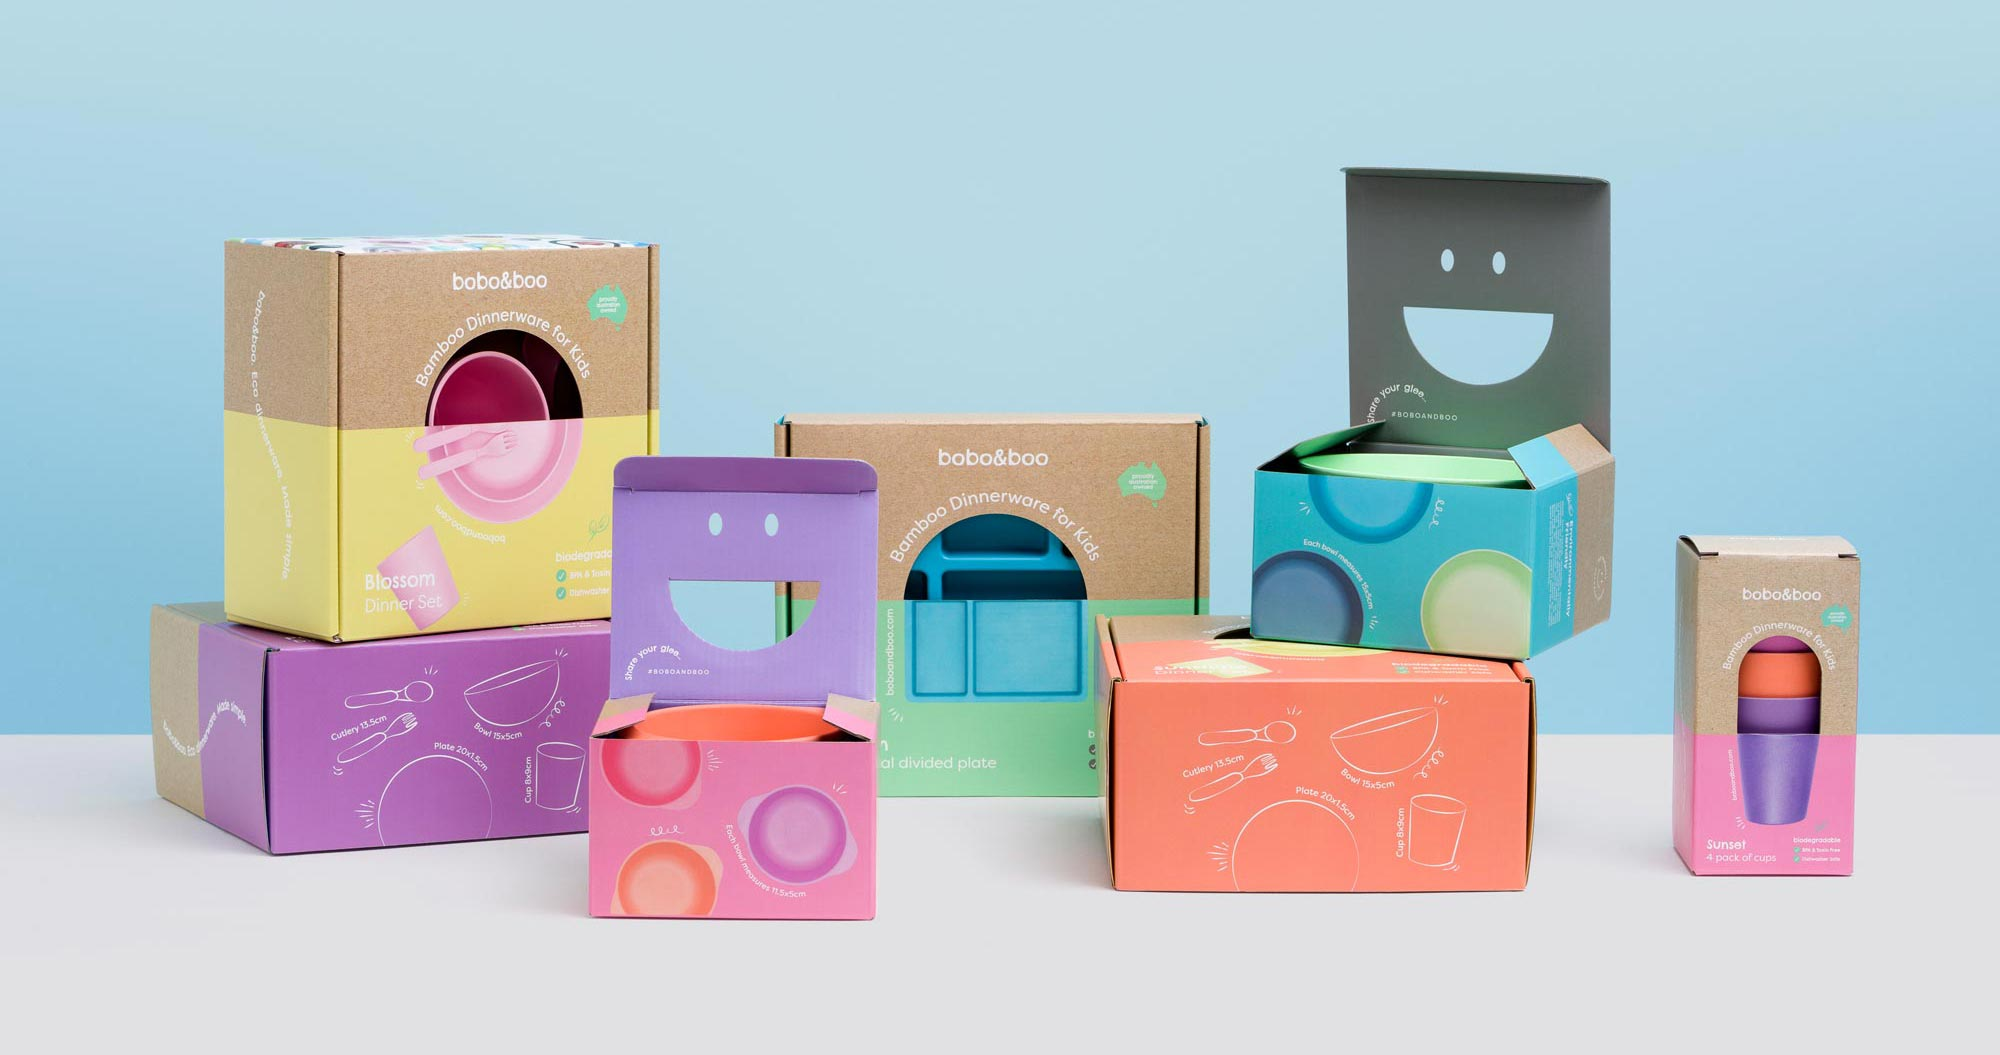 A large collection of product sets from Bobo & Boo's Bamboo range. Each set is in its own box, and two boxes have their lids open, showing the cut-out smile.